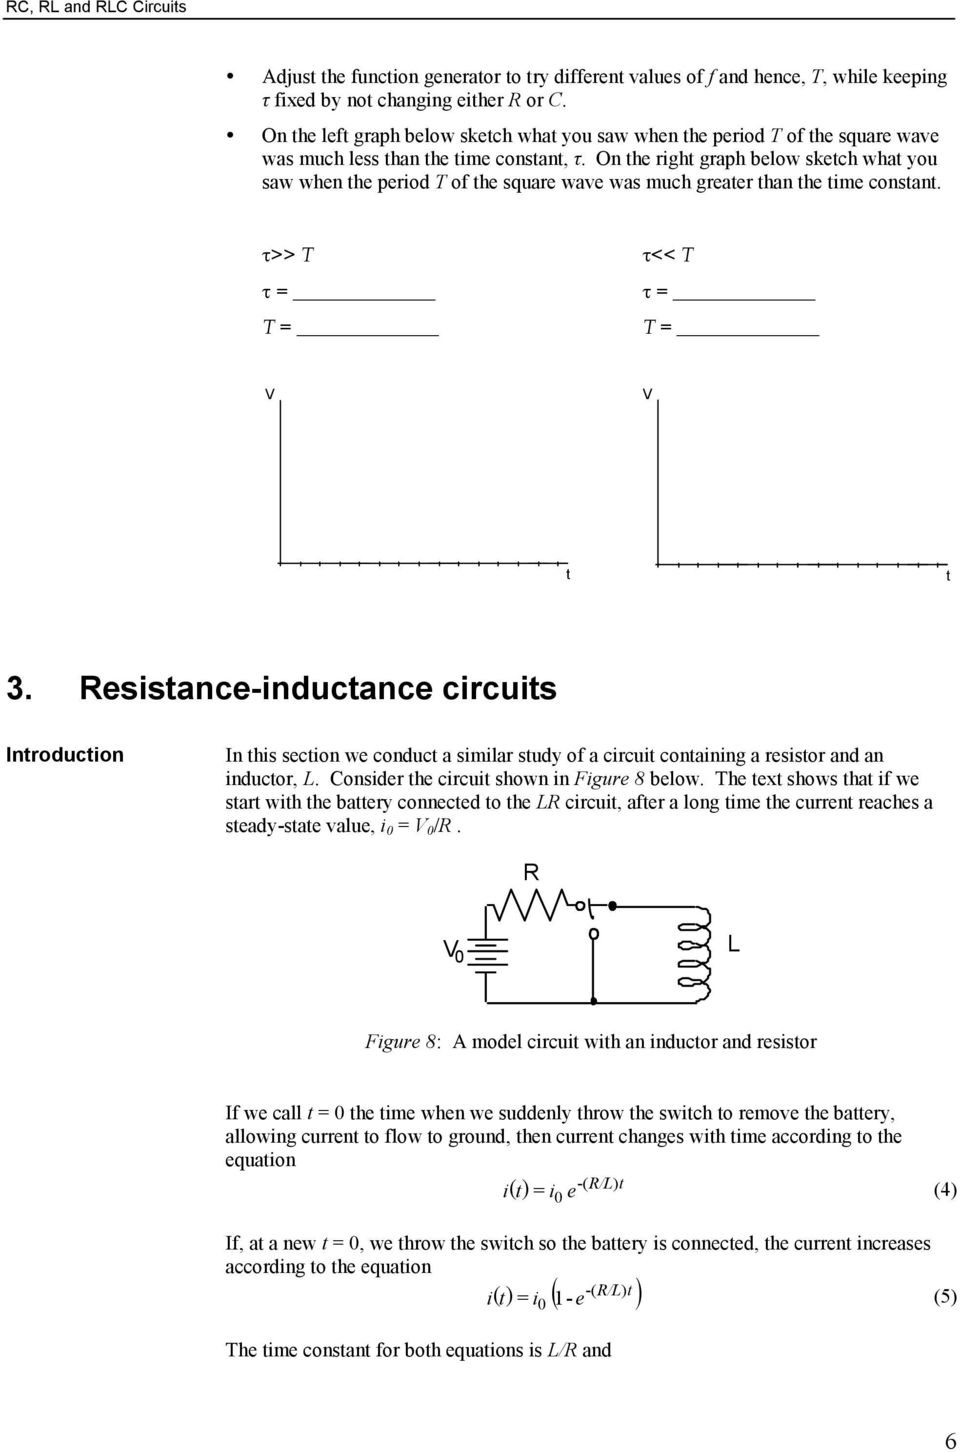 Rc Rl And Rlc Circuits Pdf If We Increase The Inductance In An Circuit What Happens To On He Righ Graph Below Skech Wha You Saw When Period T Of Square